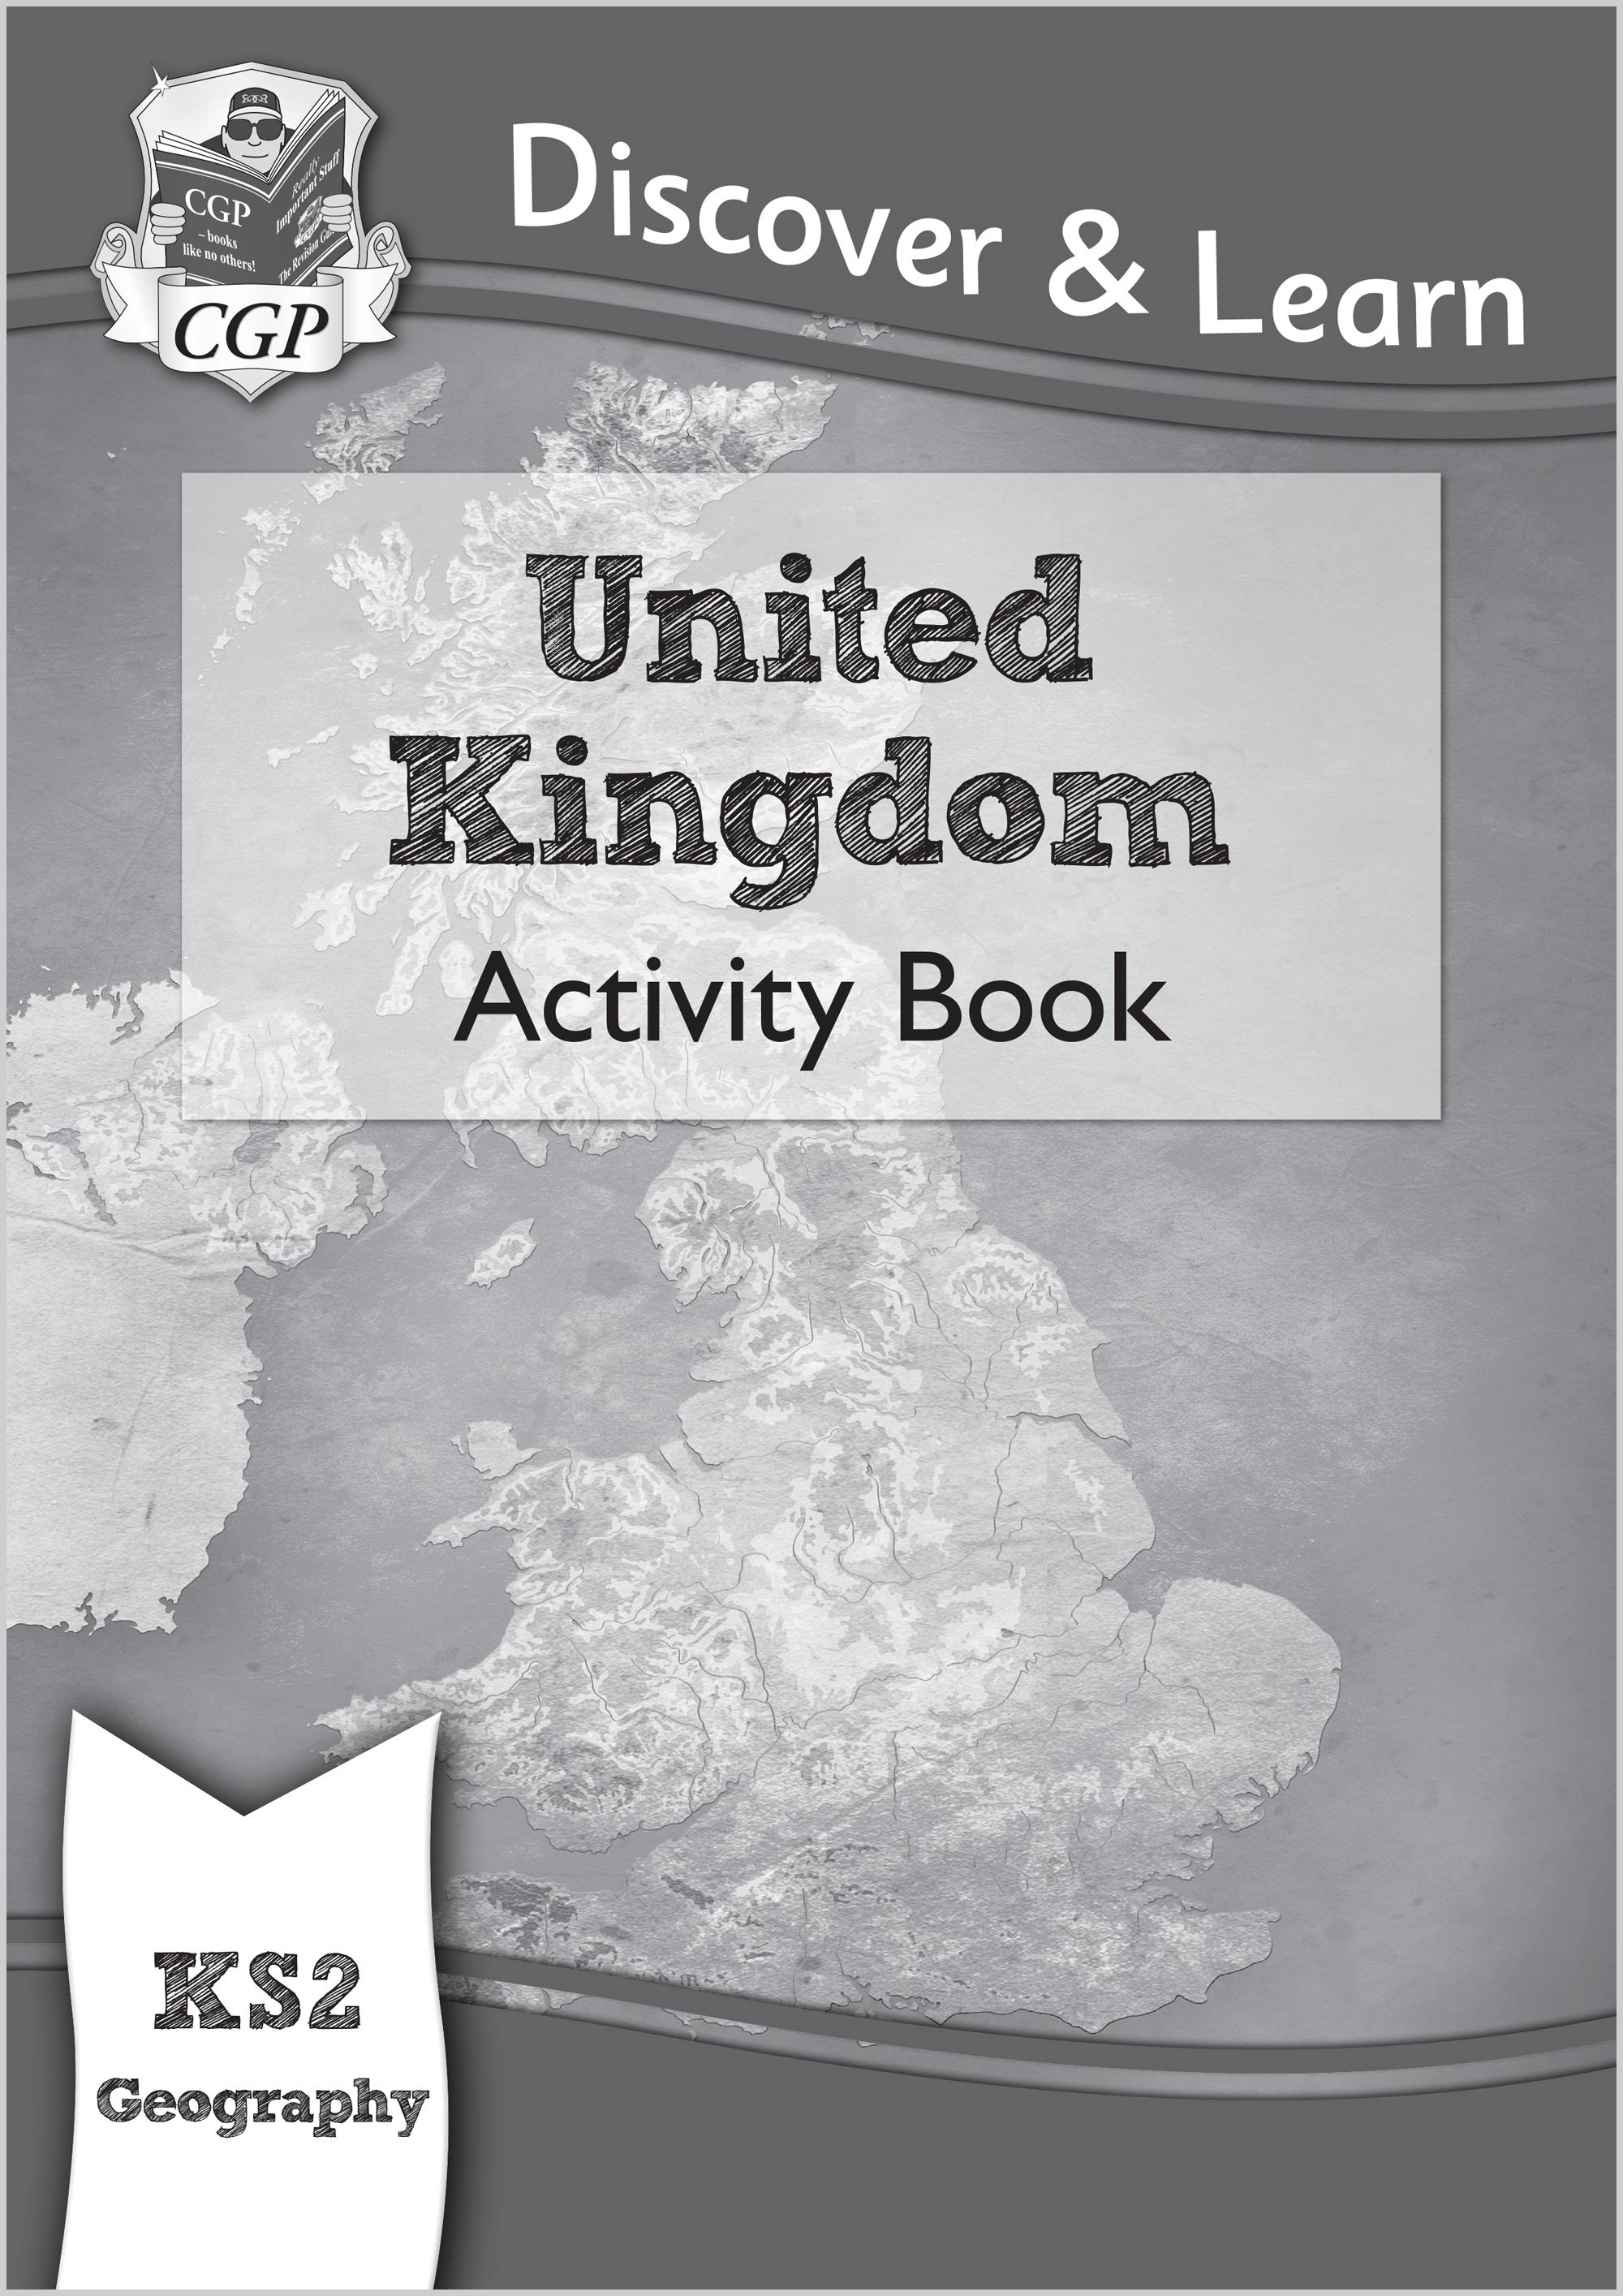 GUW21 - New KS2 Discover & Learn: Geography - United Kingdom Activity Book